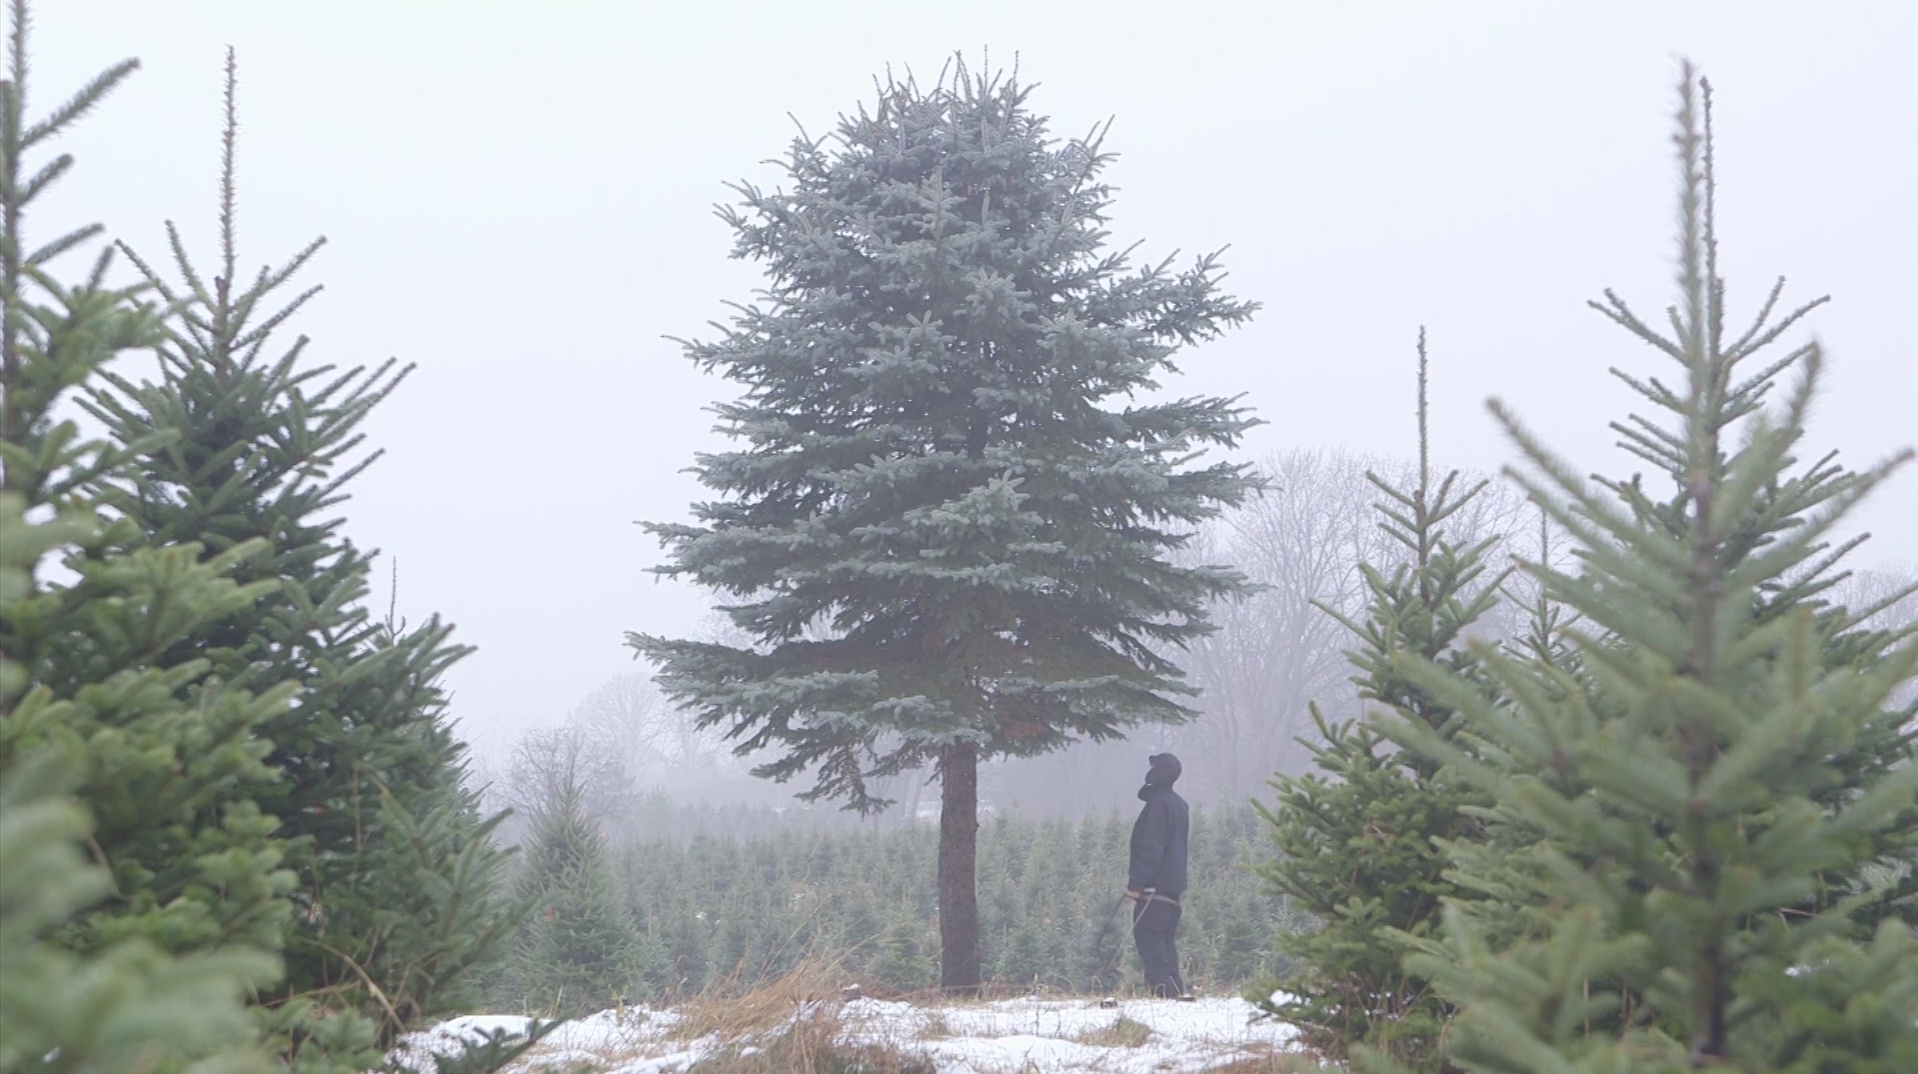 Minnesota Public Radio's Tim Post shows us that selecting the right tree for the Christmas holiday takes dressing properly for the winter elements, having the right tool for the job and knowing what type of tree is the best fit for each home.